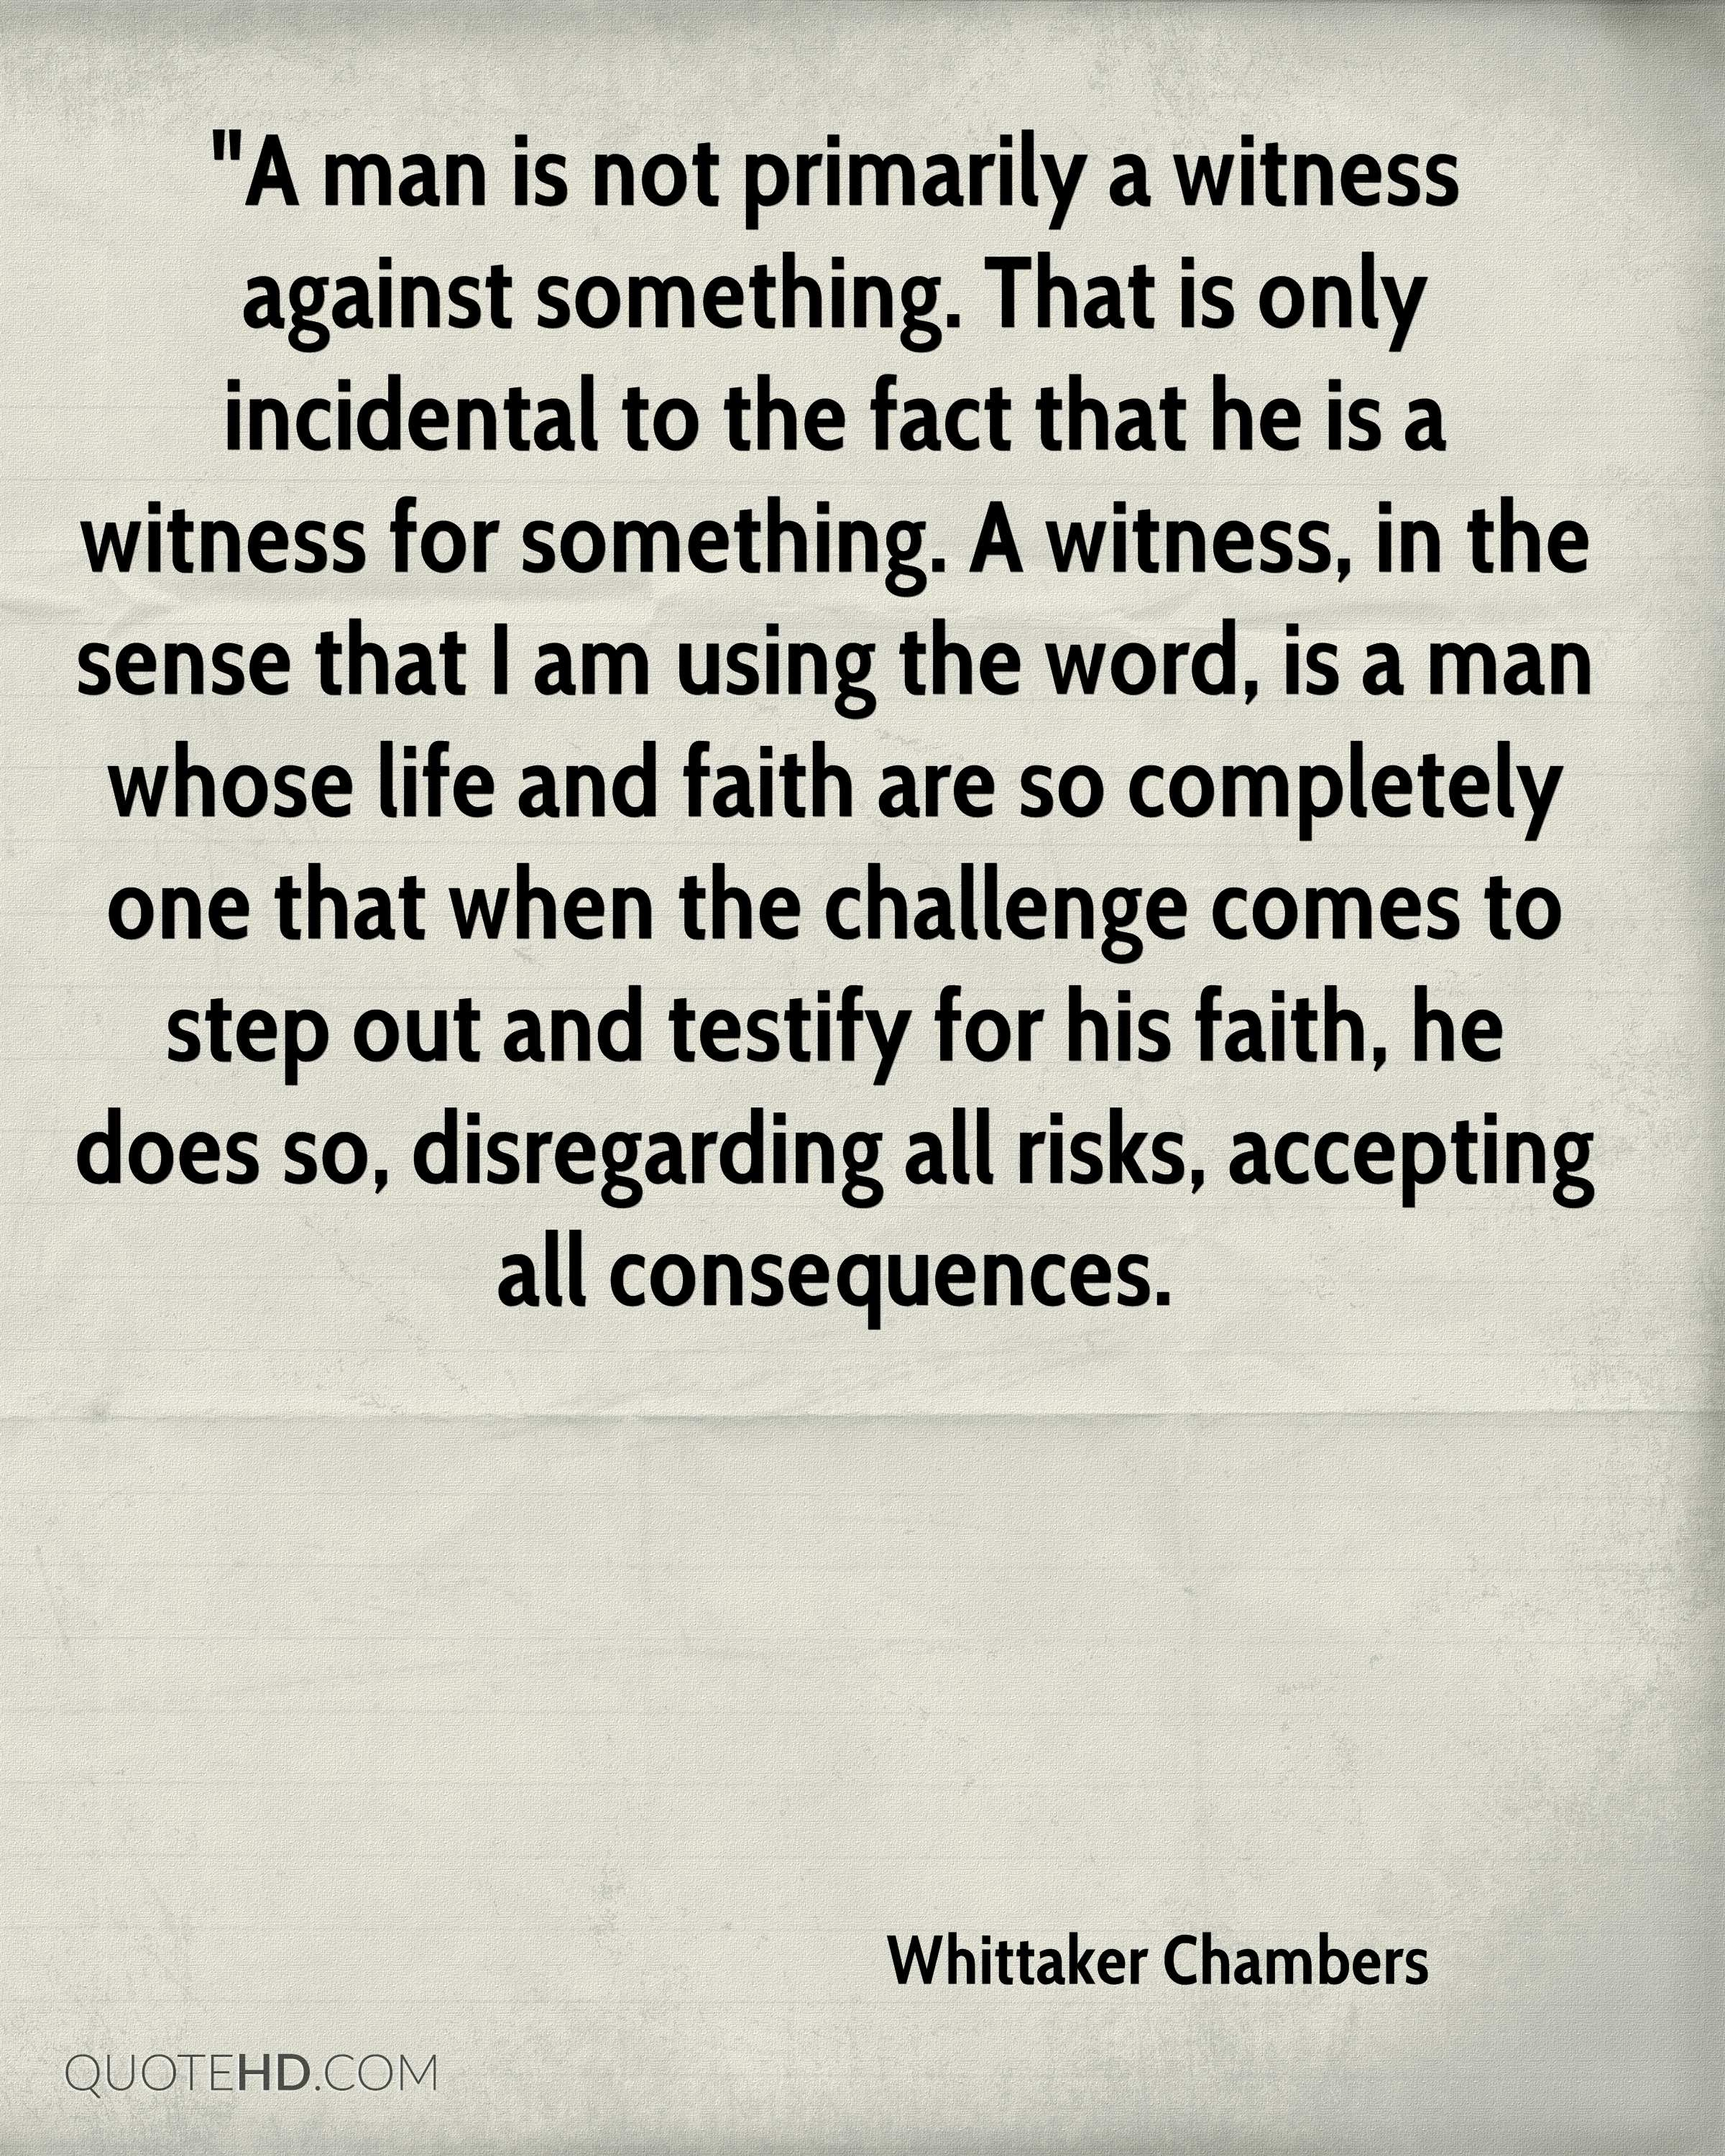 """""""A man is not primarily a witness against something. That is only incidental to the fact that he is a witness for something. A witness, in the sense that I am using the word, is a man whose life and faith are so completely one that when the challenge comes to step out and testify for his faith, he does so, disregarding all risks, accepting all consequences."""